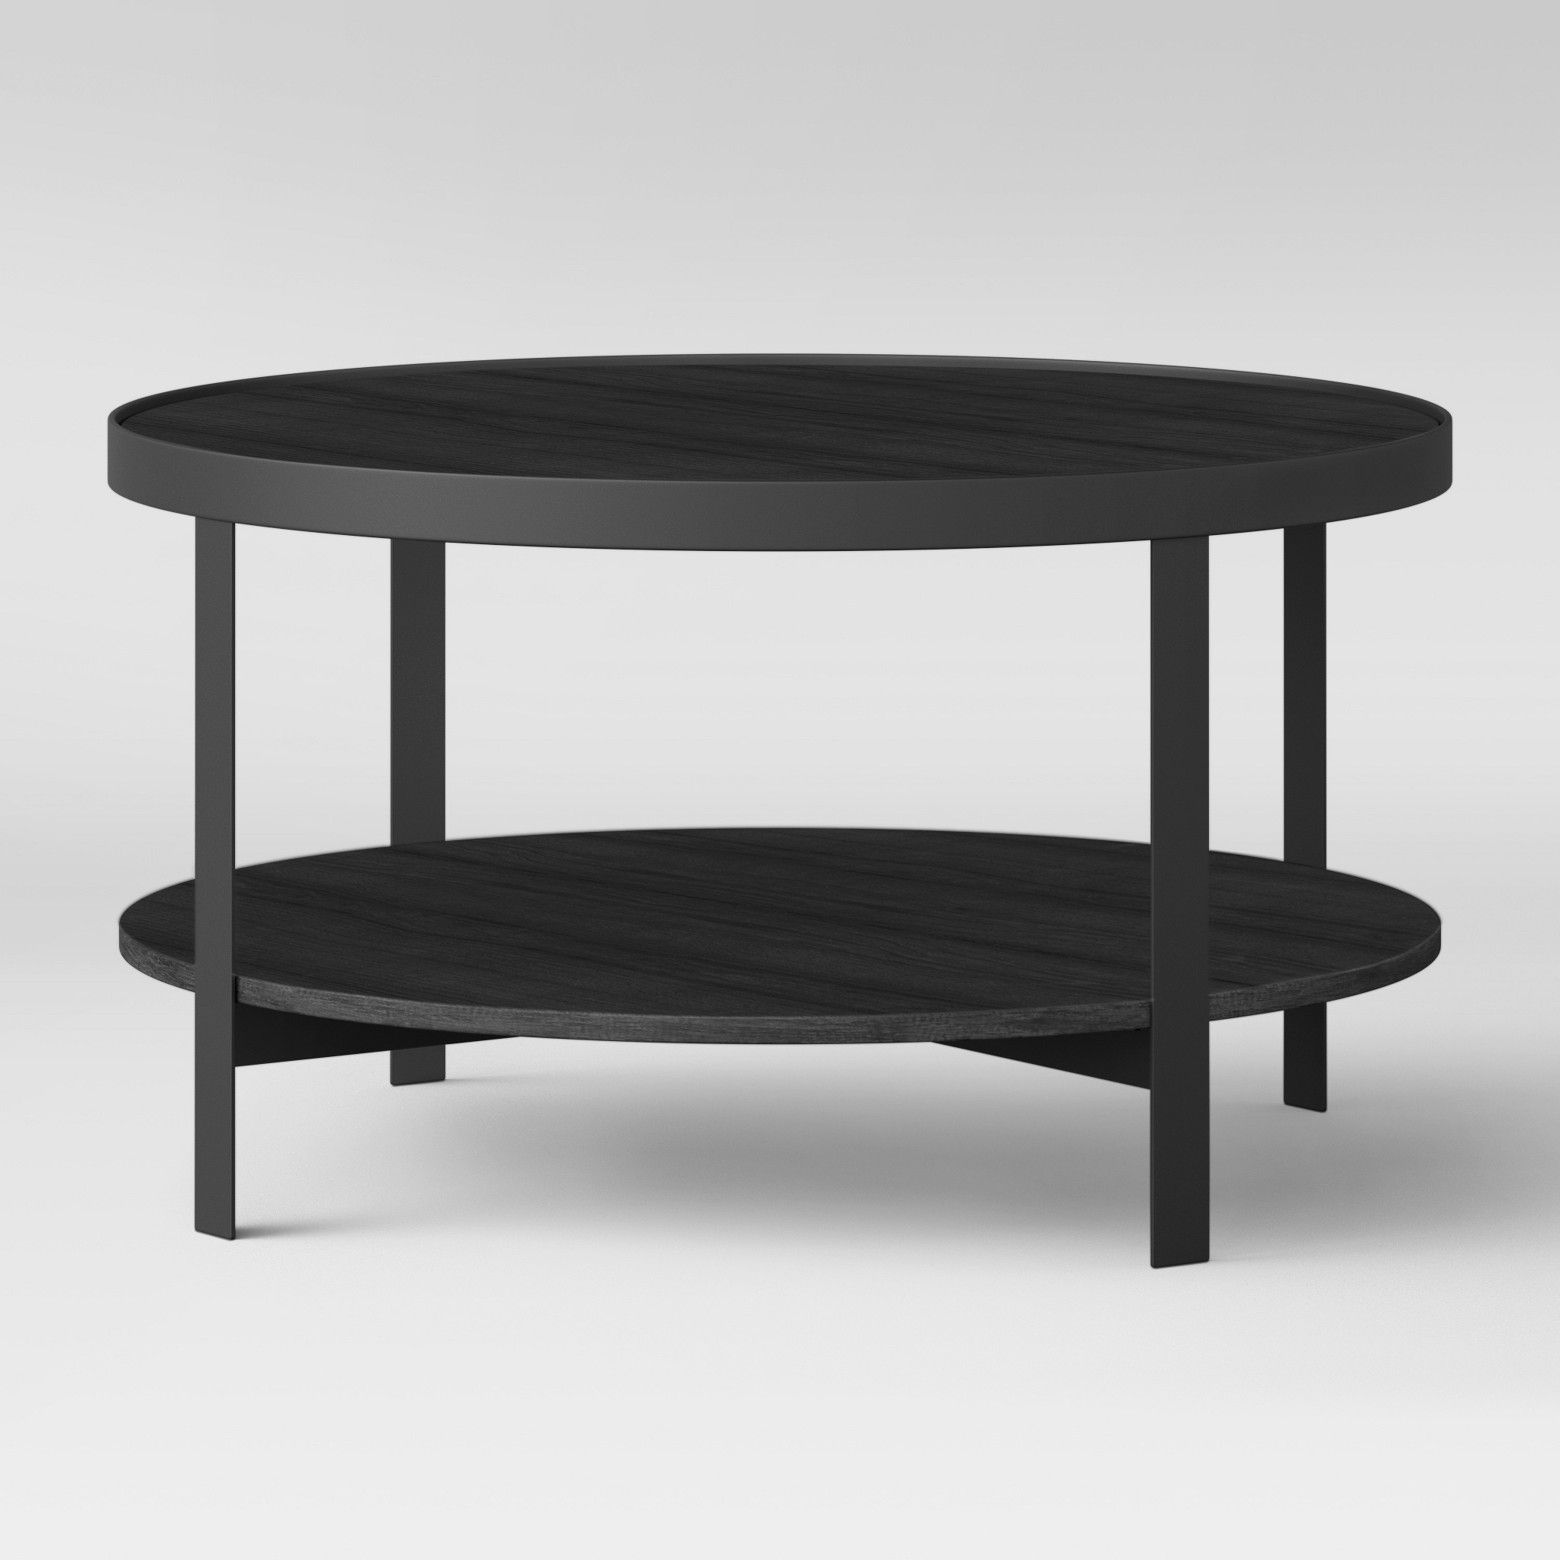 When You 39 Re Looking For An Easy Way To Incorporate A Modern Look Into Your Living Room You White Round Coffee Table Black Coffee Tables Round Coffee Table [ 1560 x 1560 Pixel ]